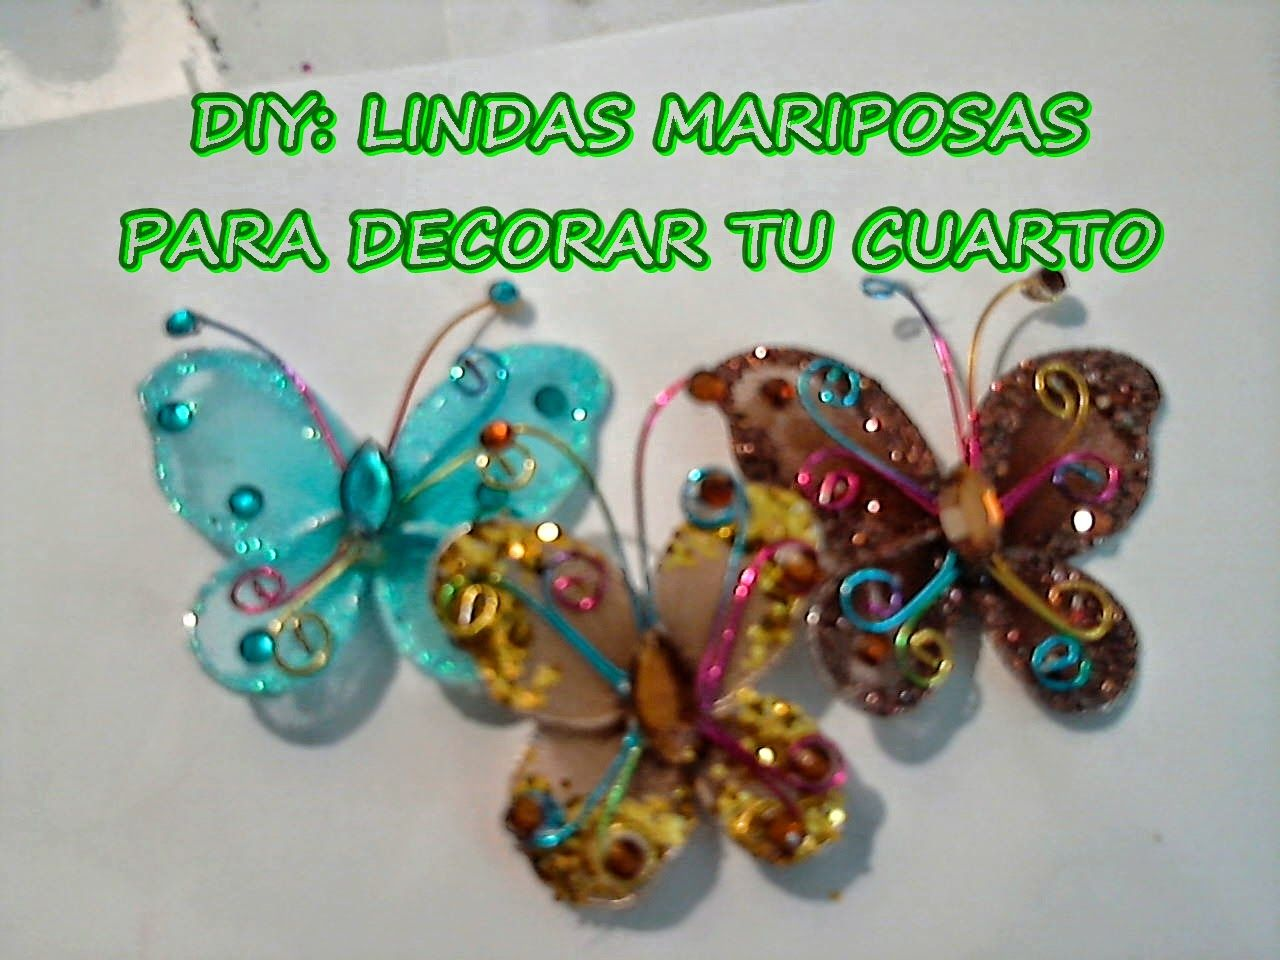 Diy mariposas hechas con alambre y medias nylon flowers for Manualidades para decorar tu cuarto